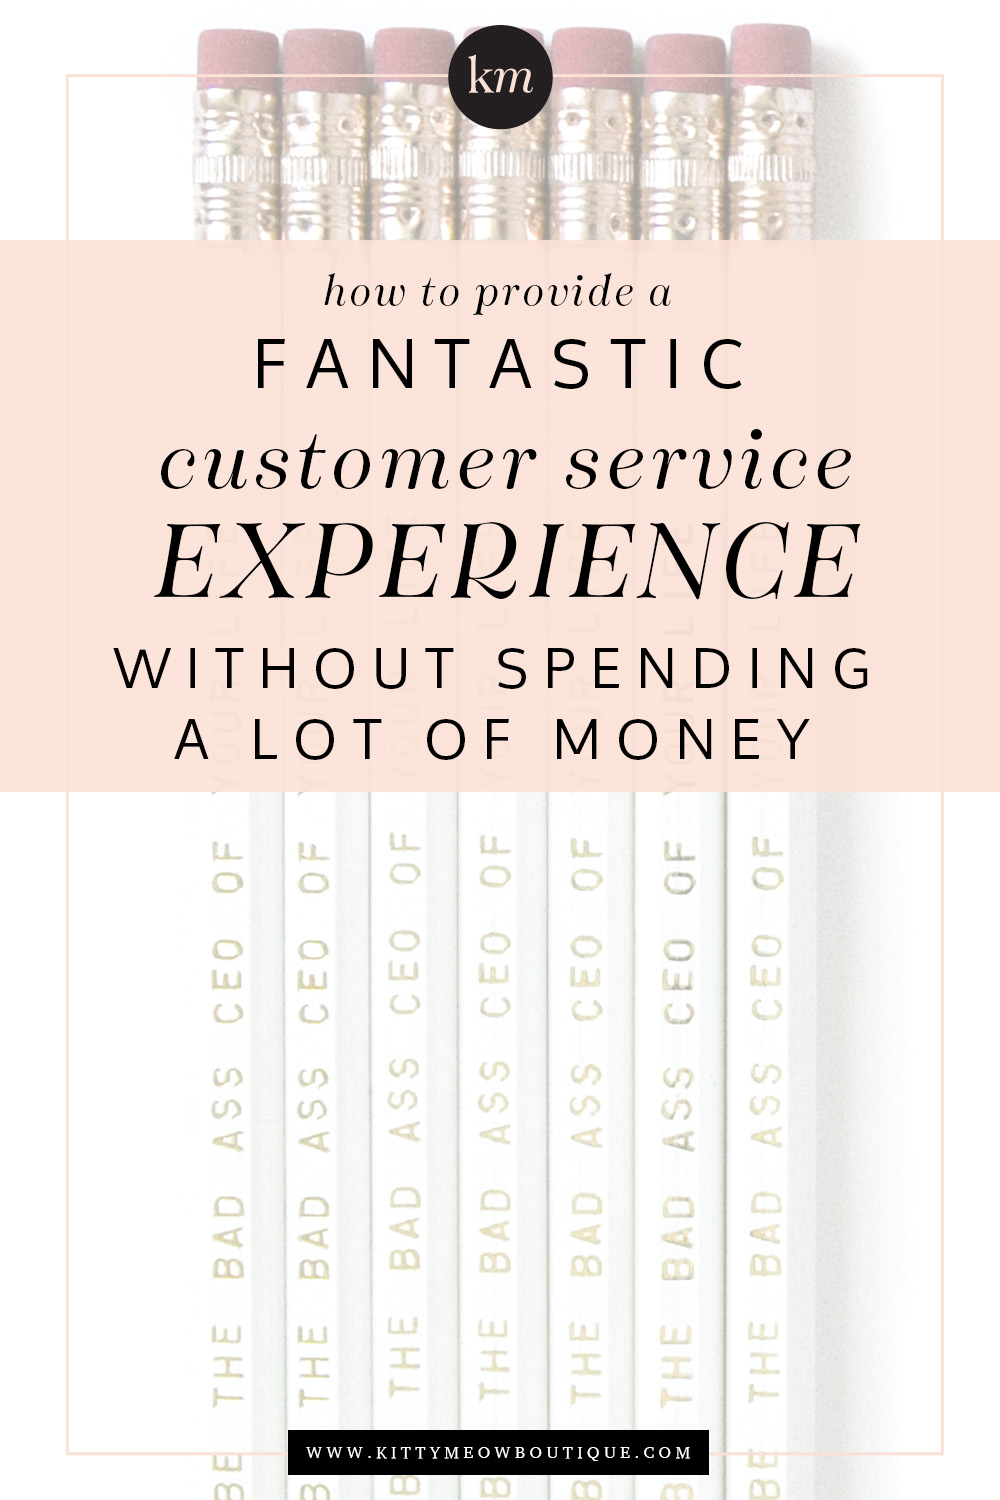 Kitty-Meow-Boutique-how-to-Customer-Service-Experience.jpg